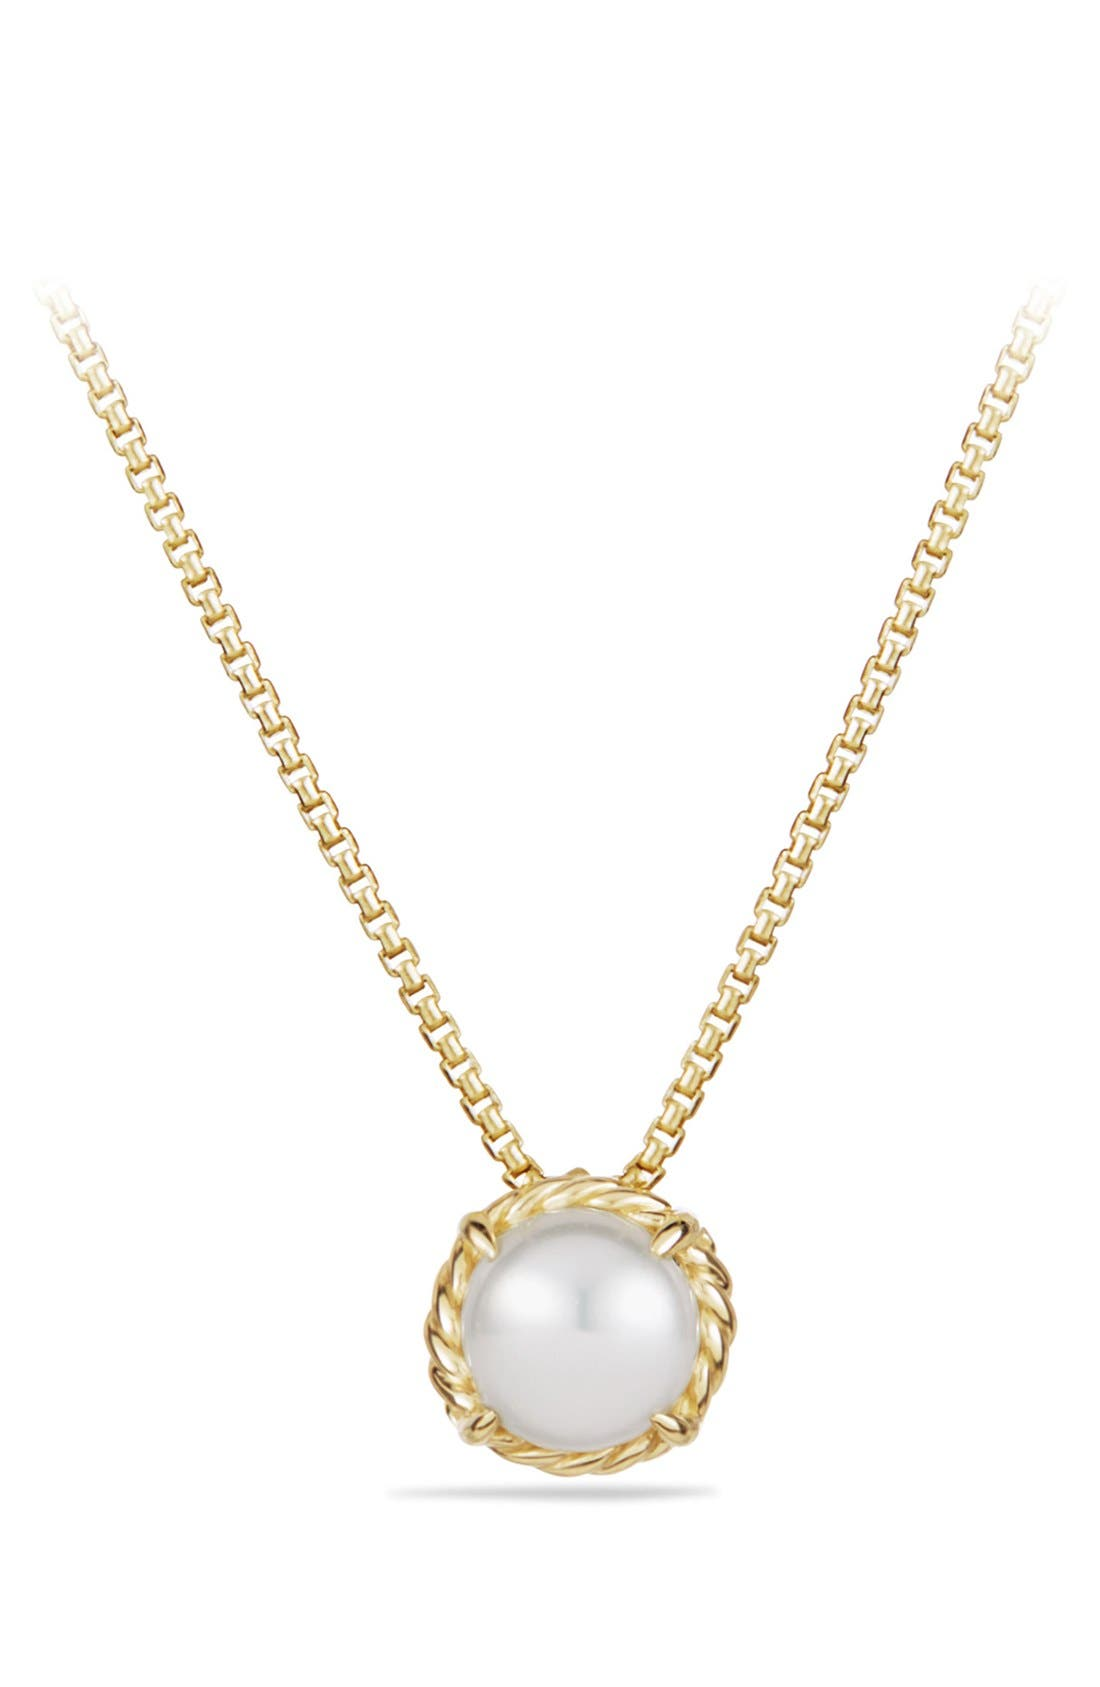 Main Image - David Yurman 'Châtelaine' Pendant Necklace with Freshwater Pearl in 18K Gold